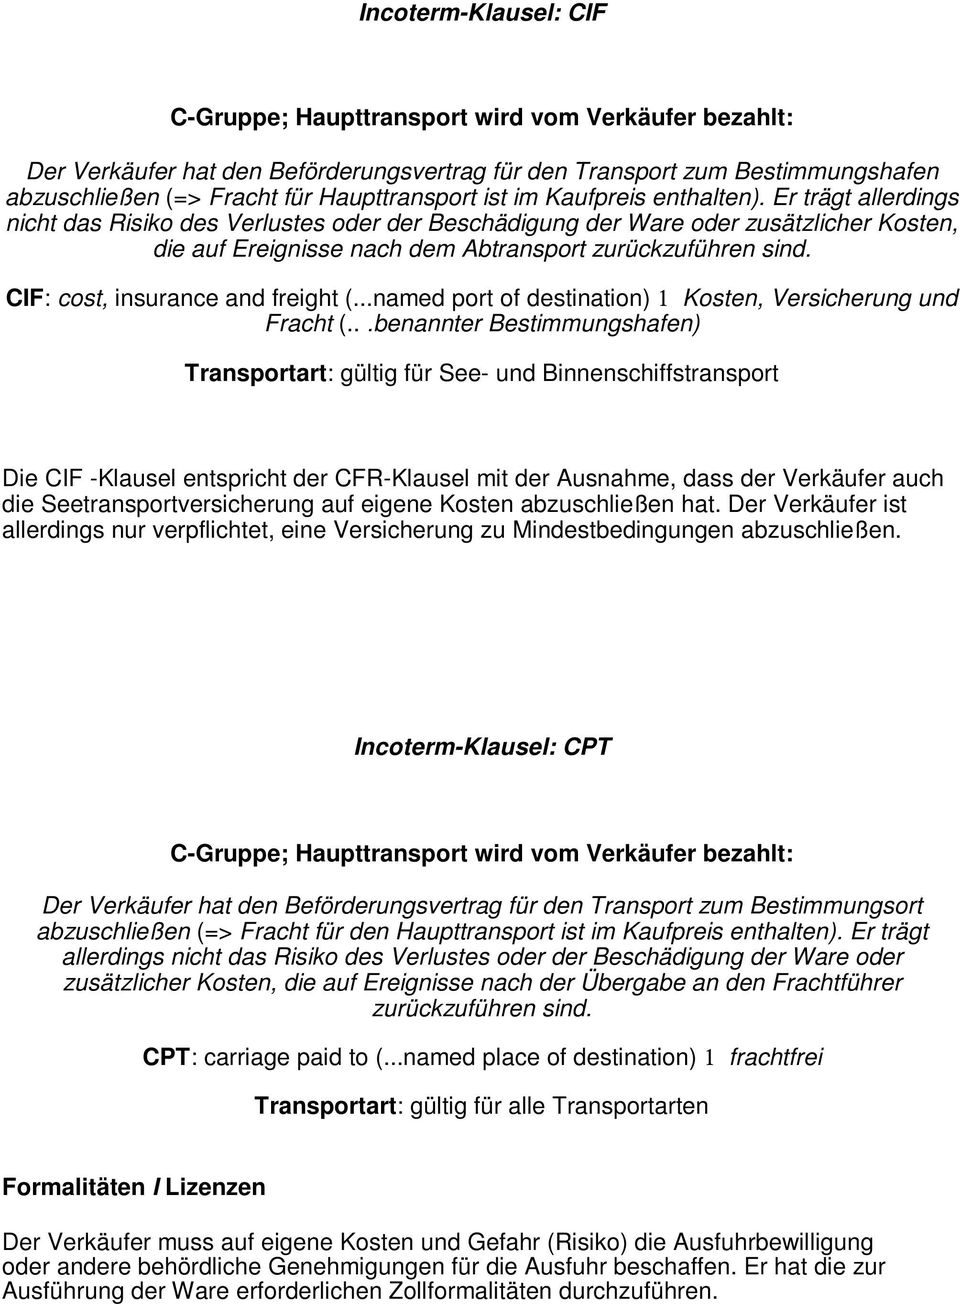 CIF: cost, insurance and freight (...named port of destination) 1 Kosten, Versicherung und Fracht (.